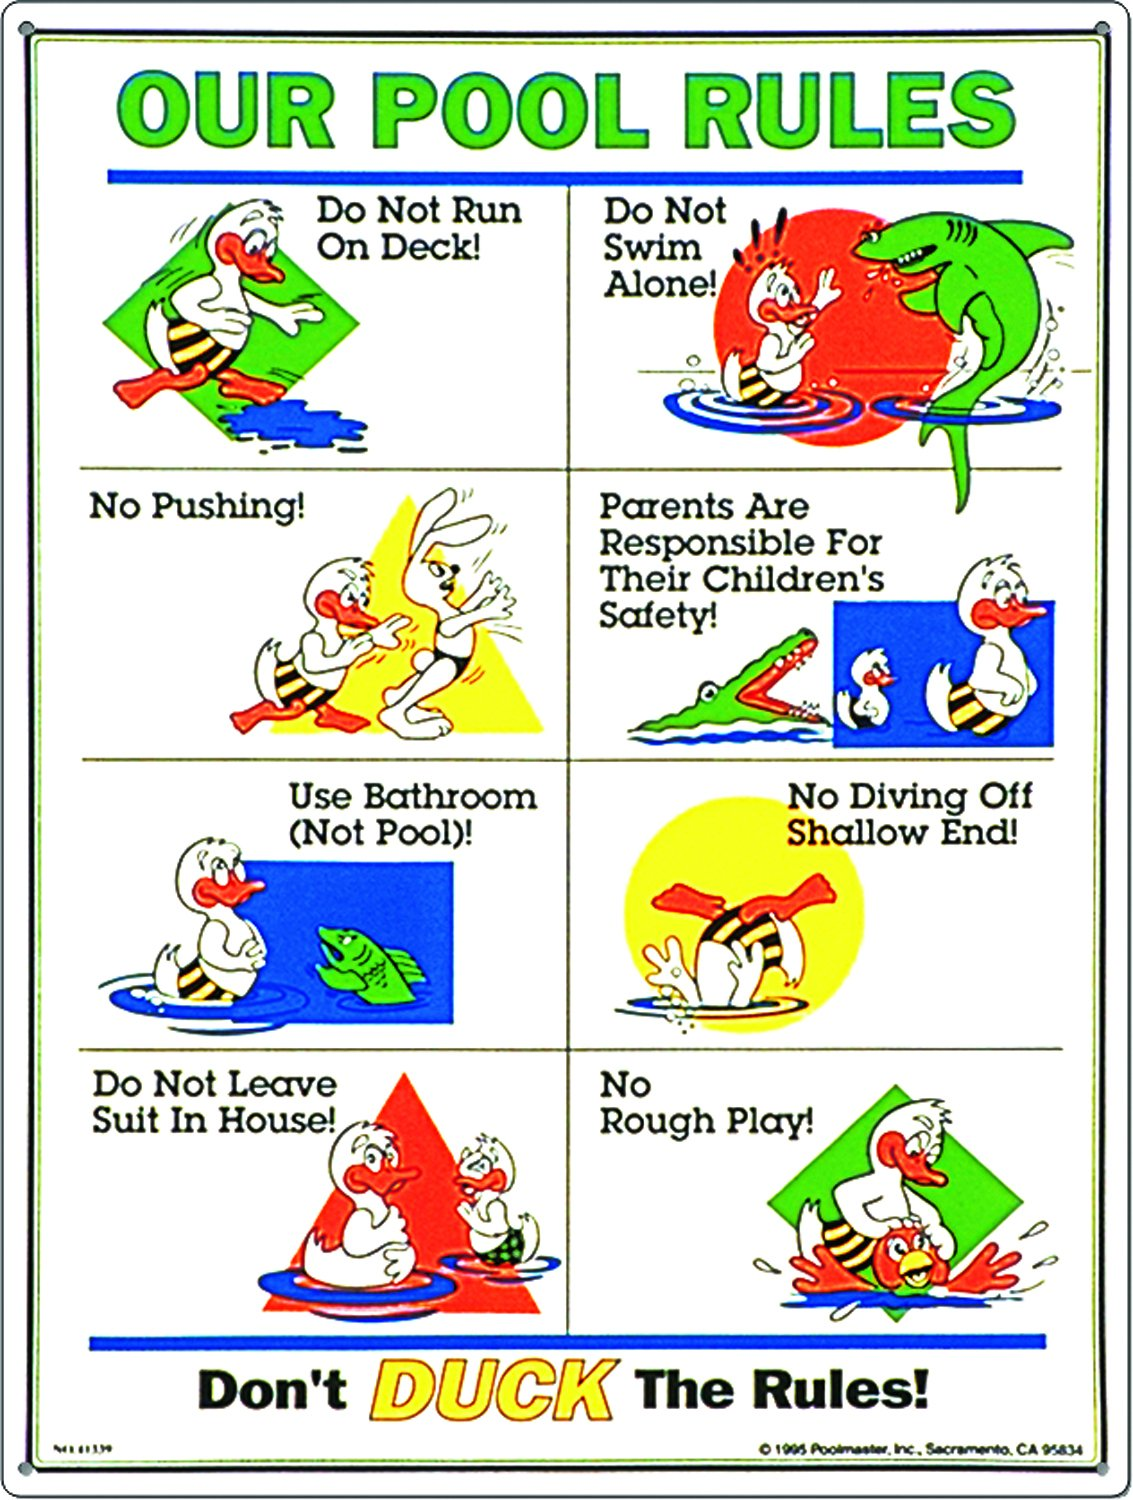 Poolmaster 41339 Our Pool Rules Duck Animation Sign for Residential Pools